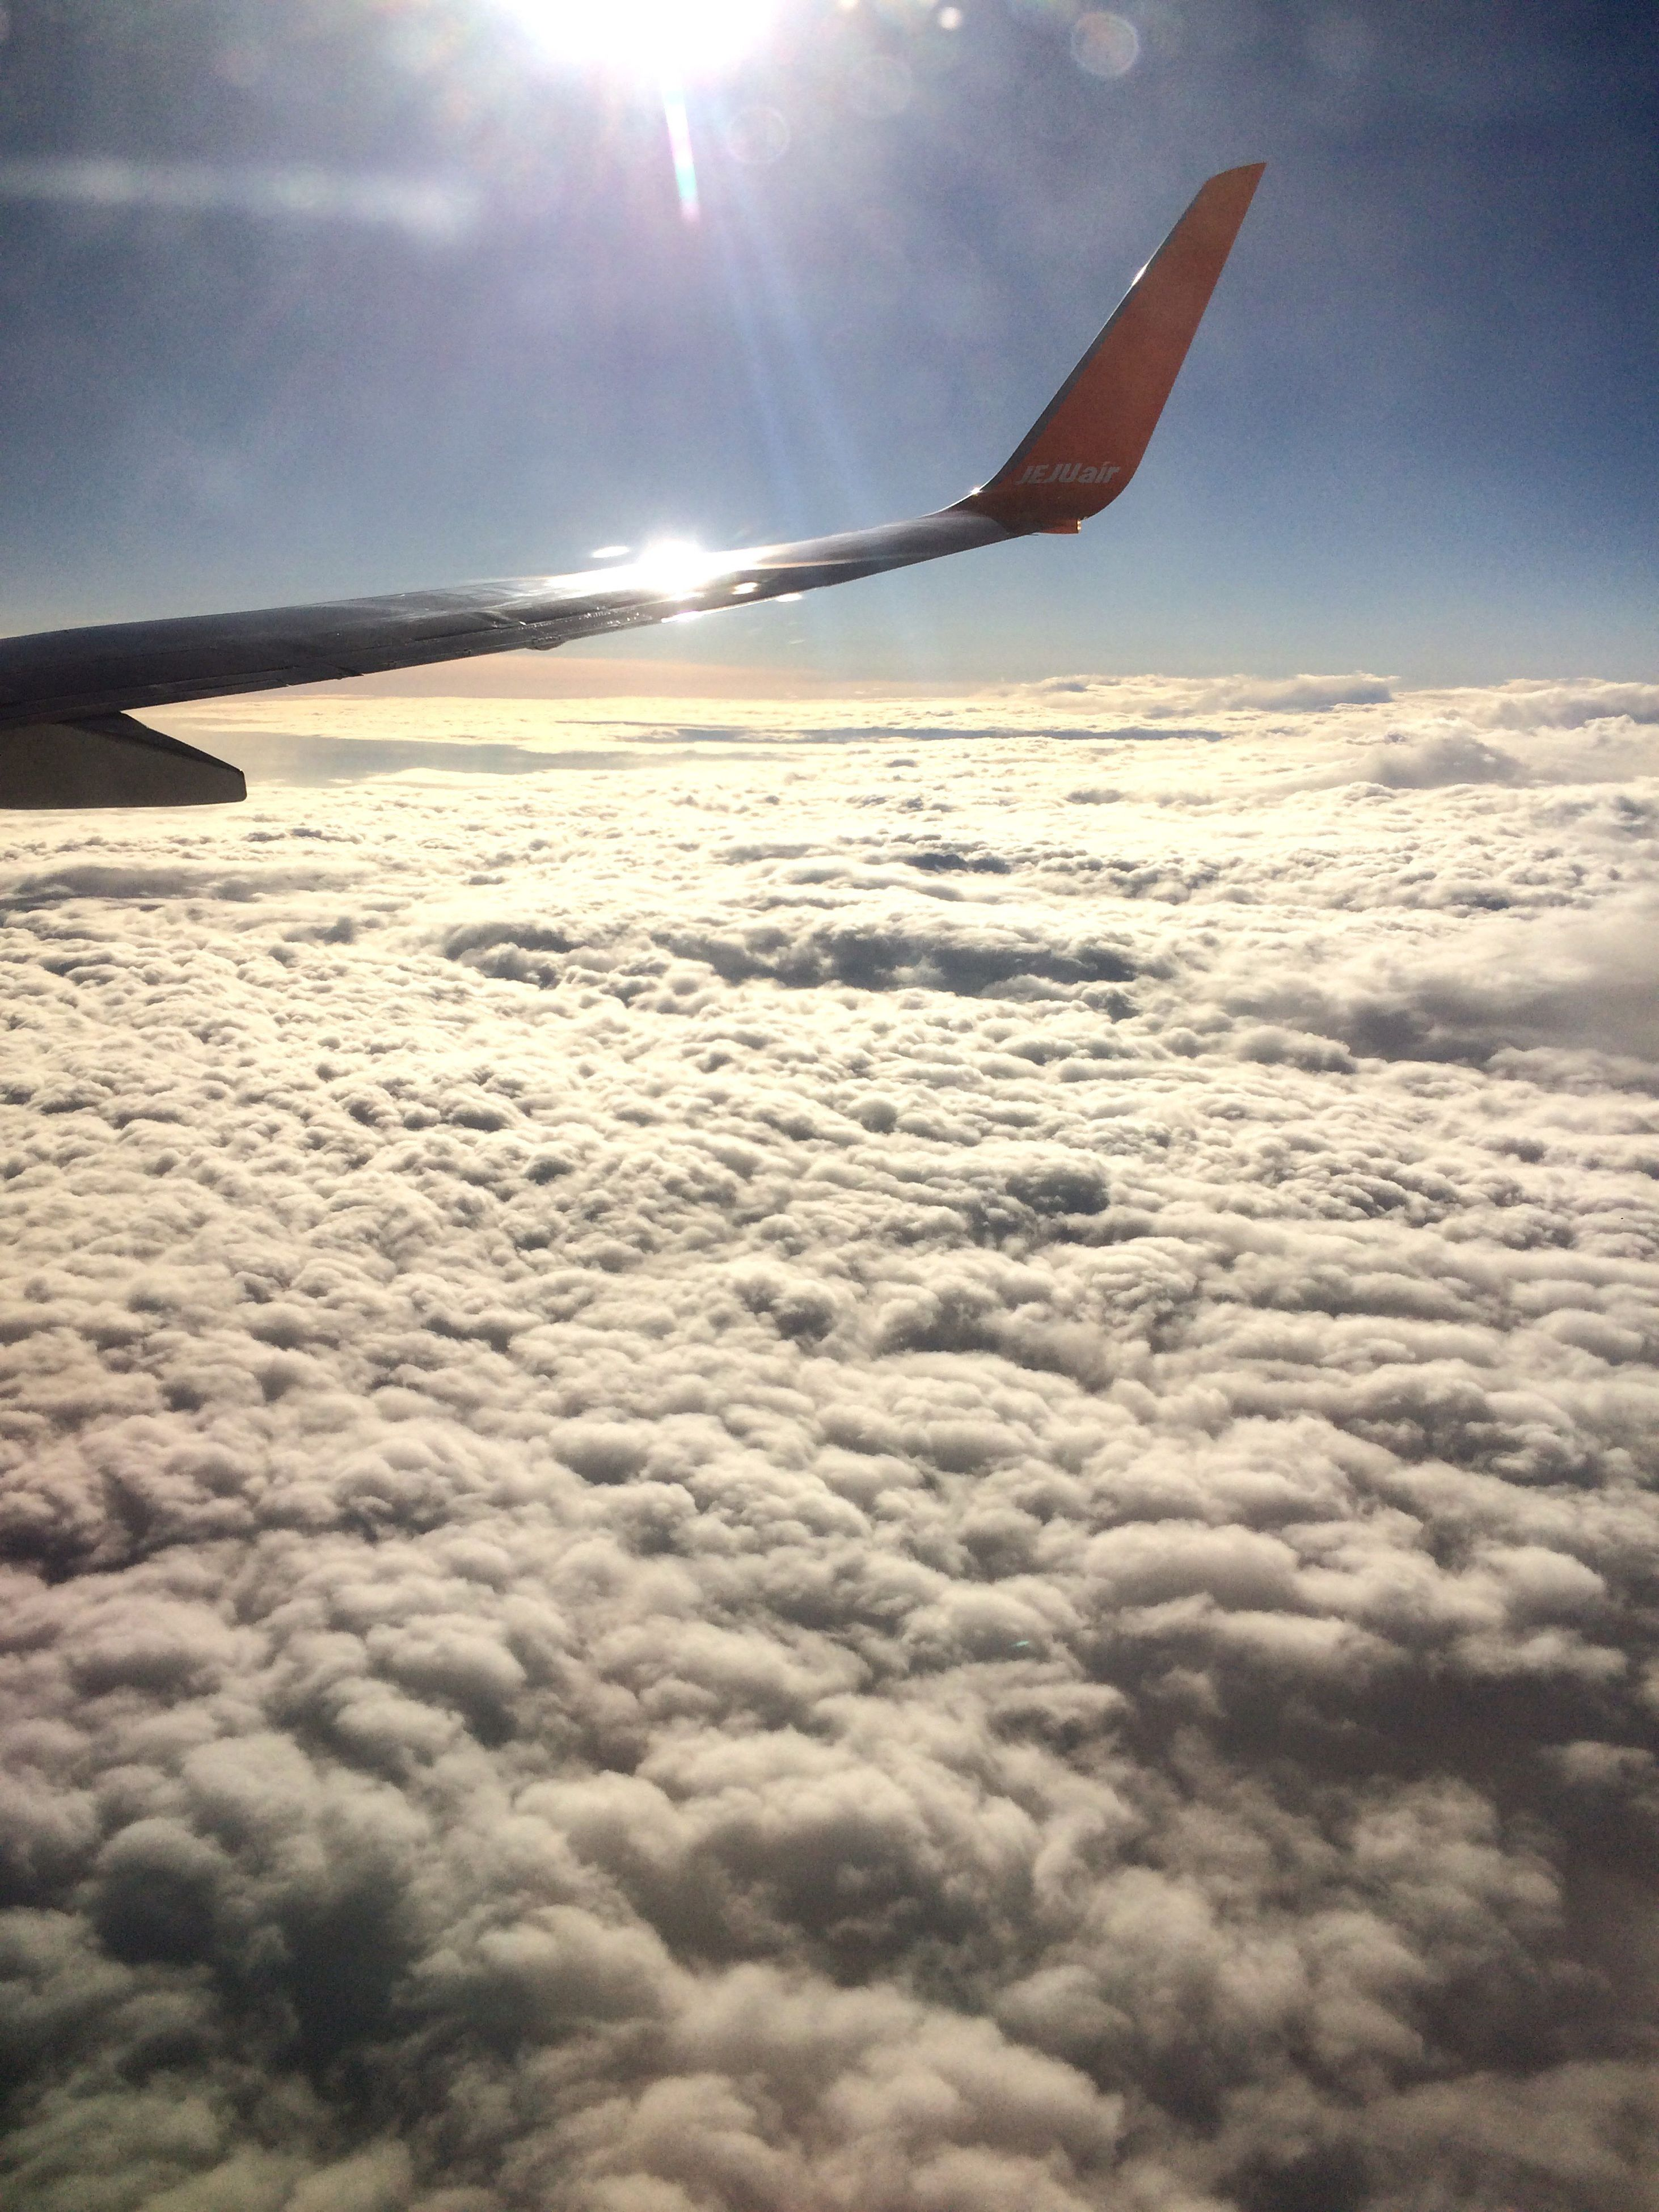 sky, sun, beauty in nature, scenics, tranquil scene, tranquility, flying, nature, sunlight, sunbeam, aircraft wing, cloud - sky, snow, airplane, landscape, transportation, cloud, idyllic, mid-air, blue